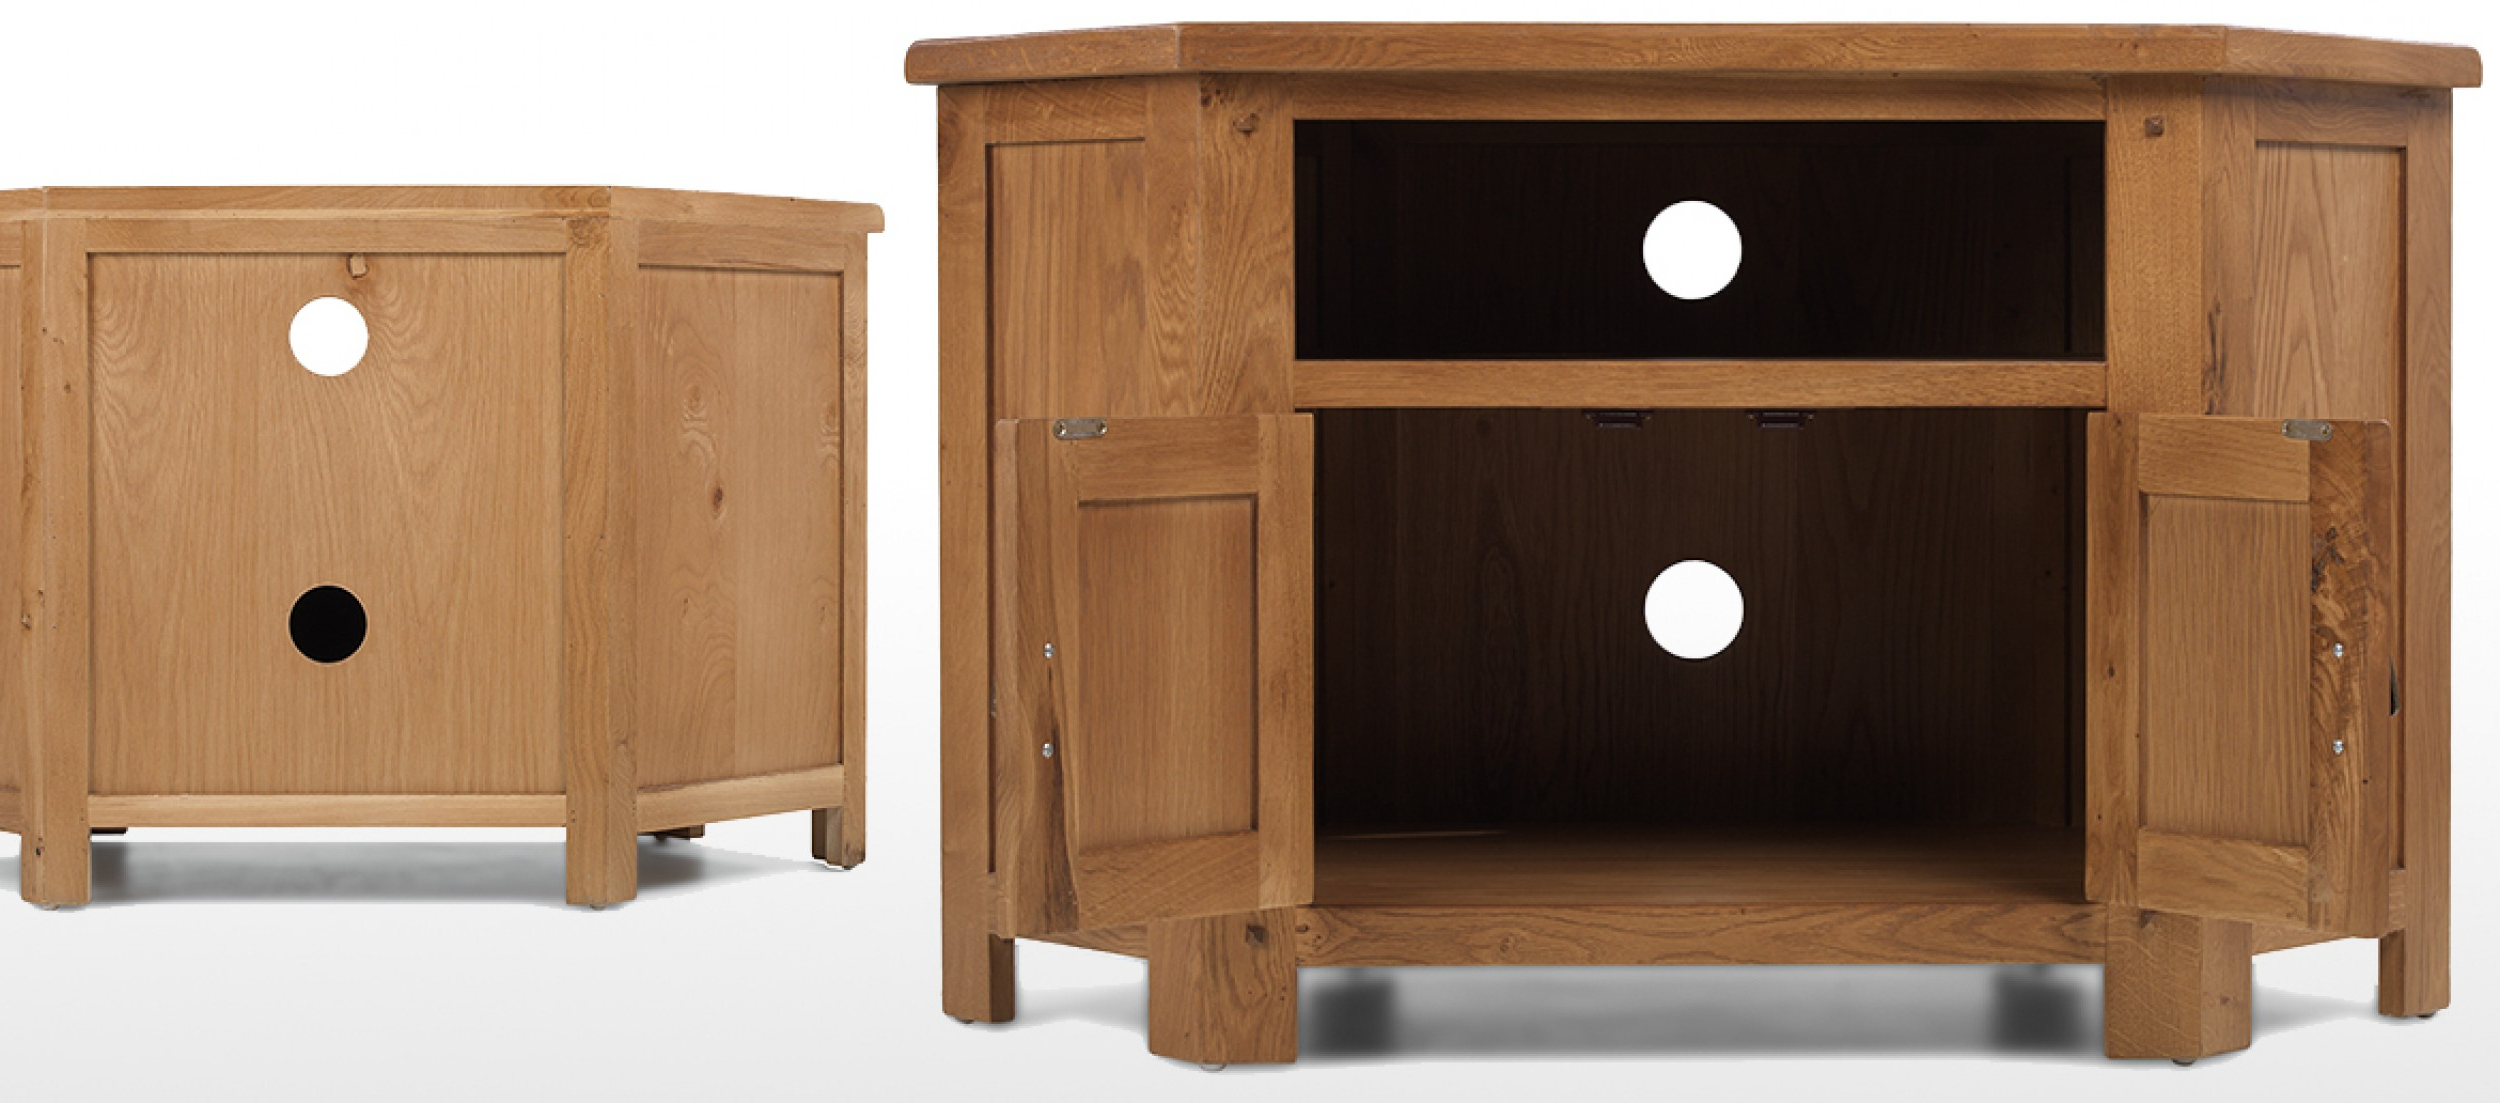 Quercus Living Pertaining To Recent Corner Oak Tv Stands (View 16 of 20)